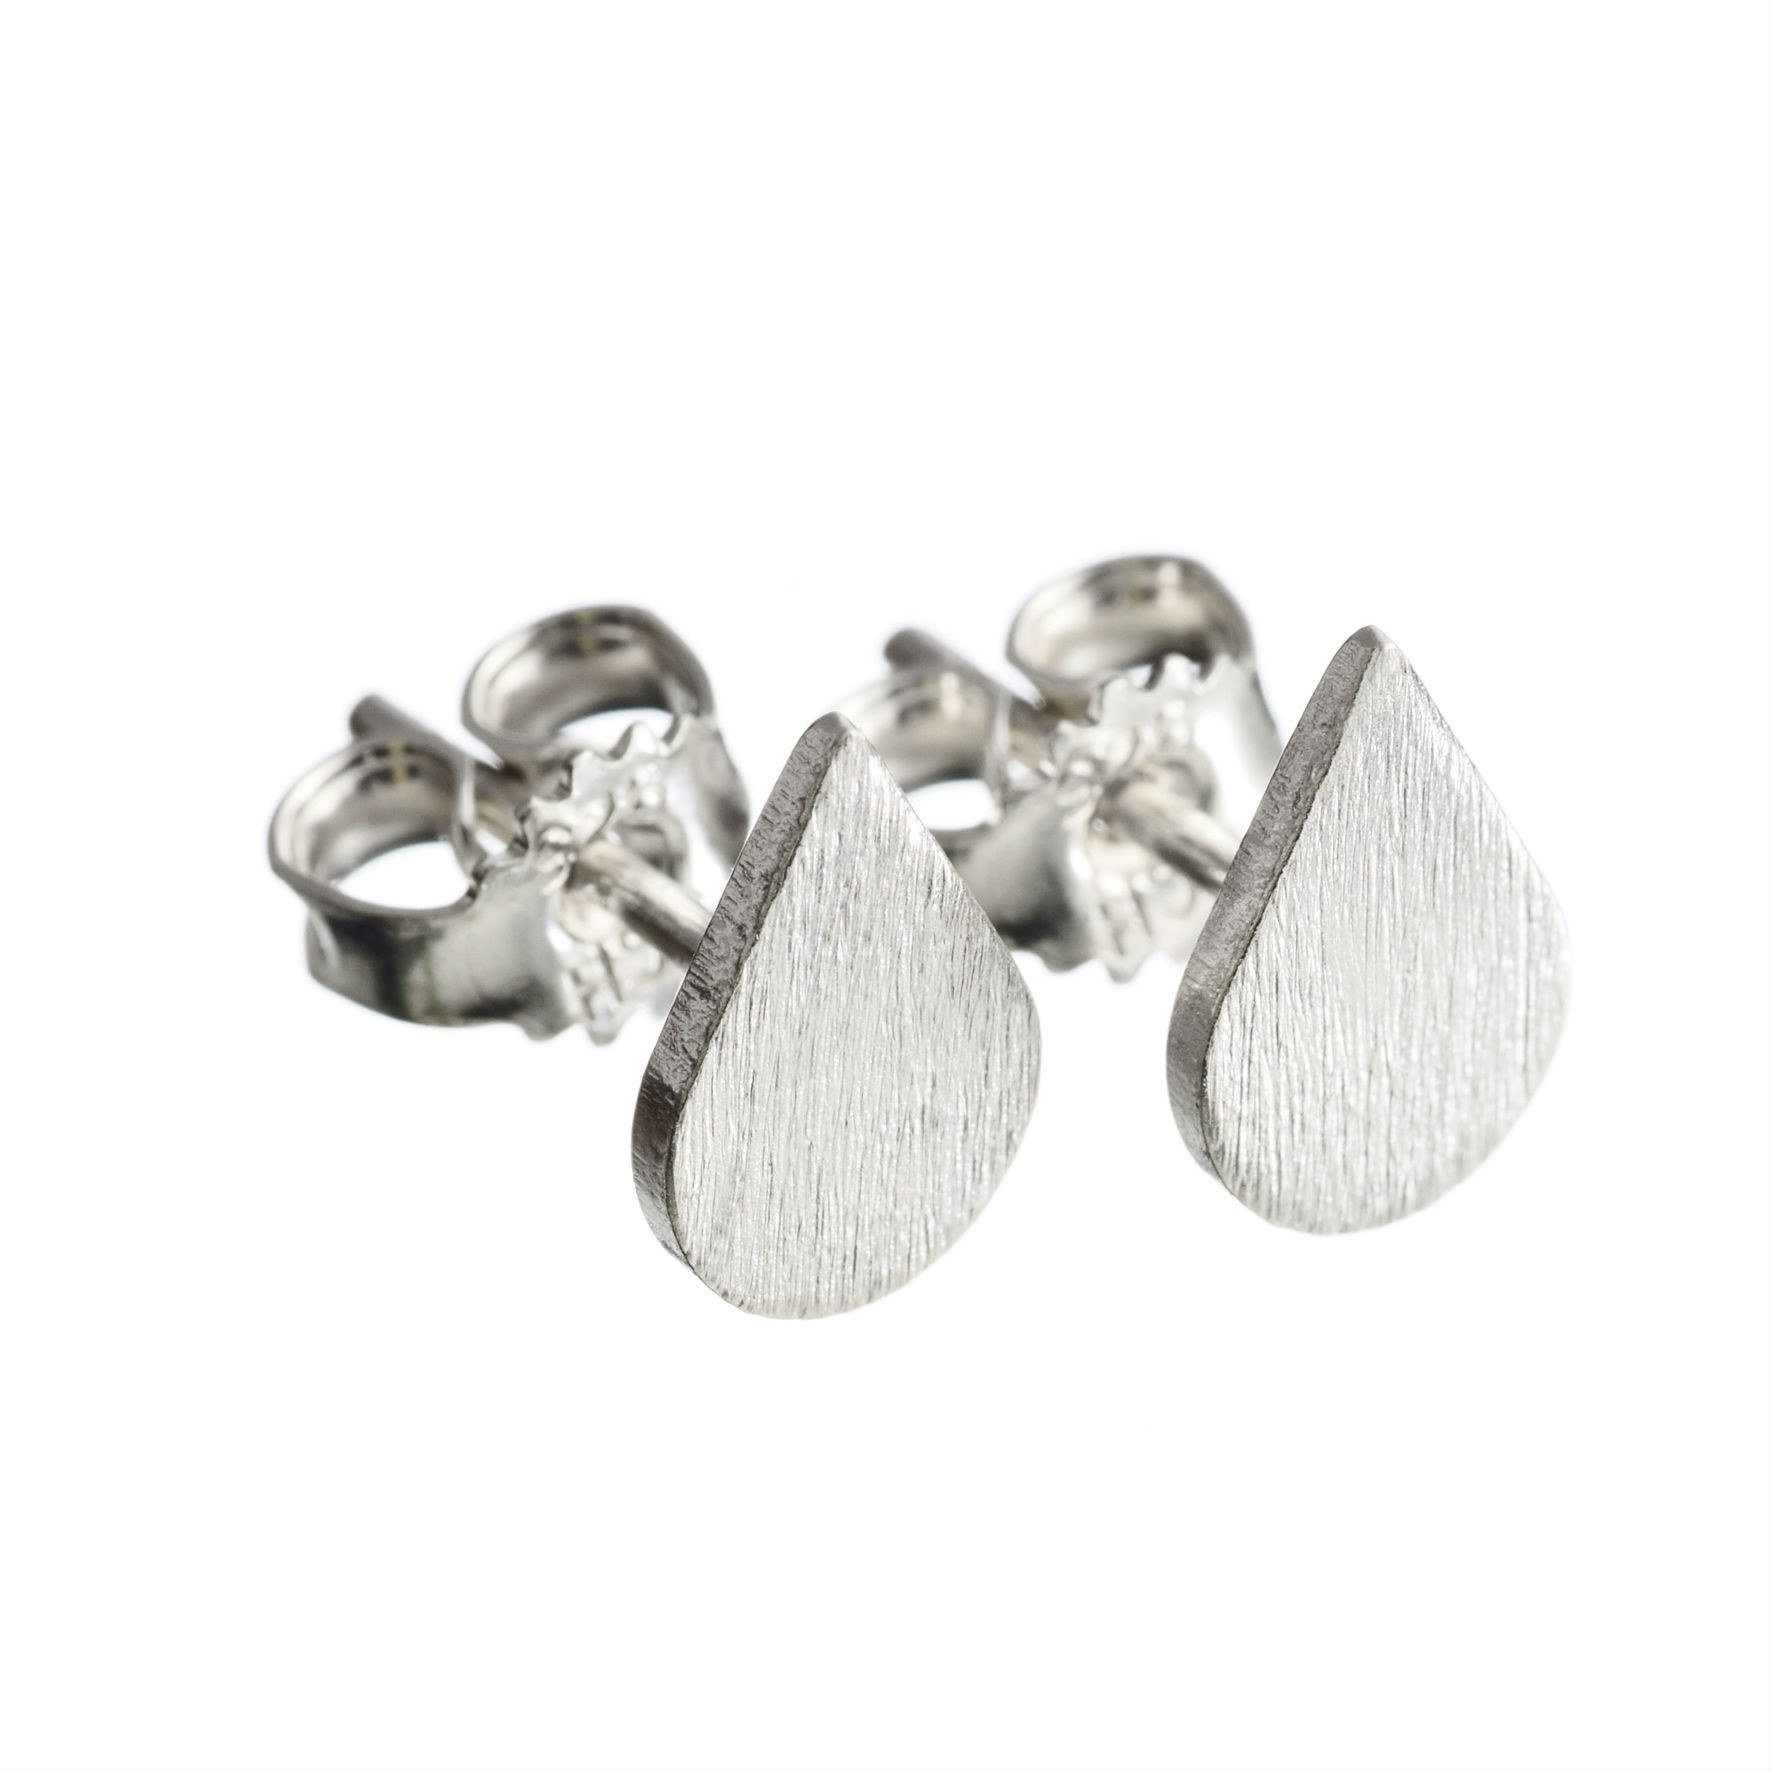 https://www.selecteddesigners.dk/media/catalog/product/c/o/co-1116-silver.jpg